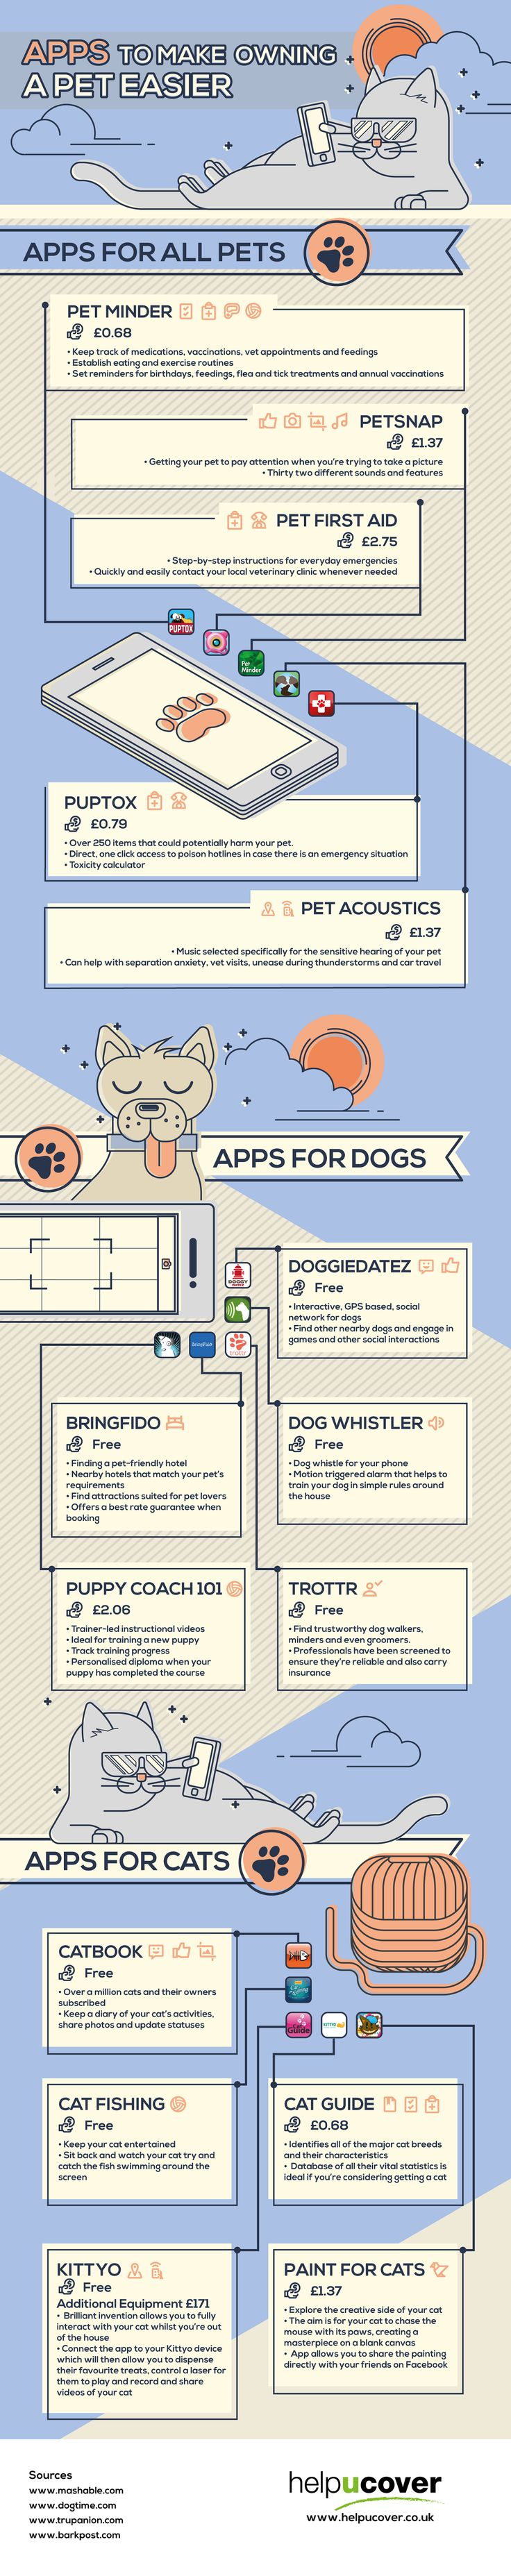 The Best Apps for Pet Owners #Infographic